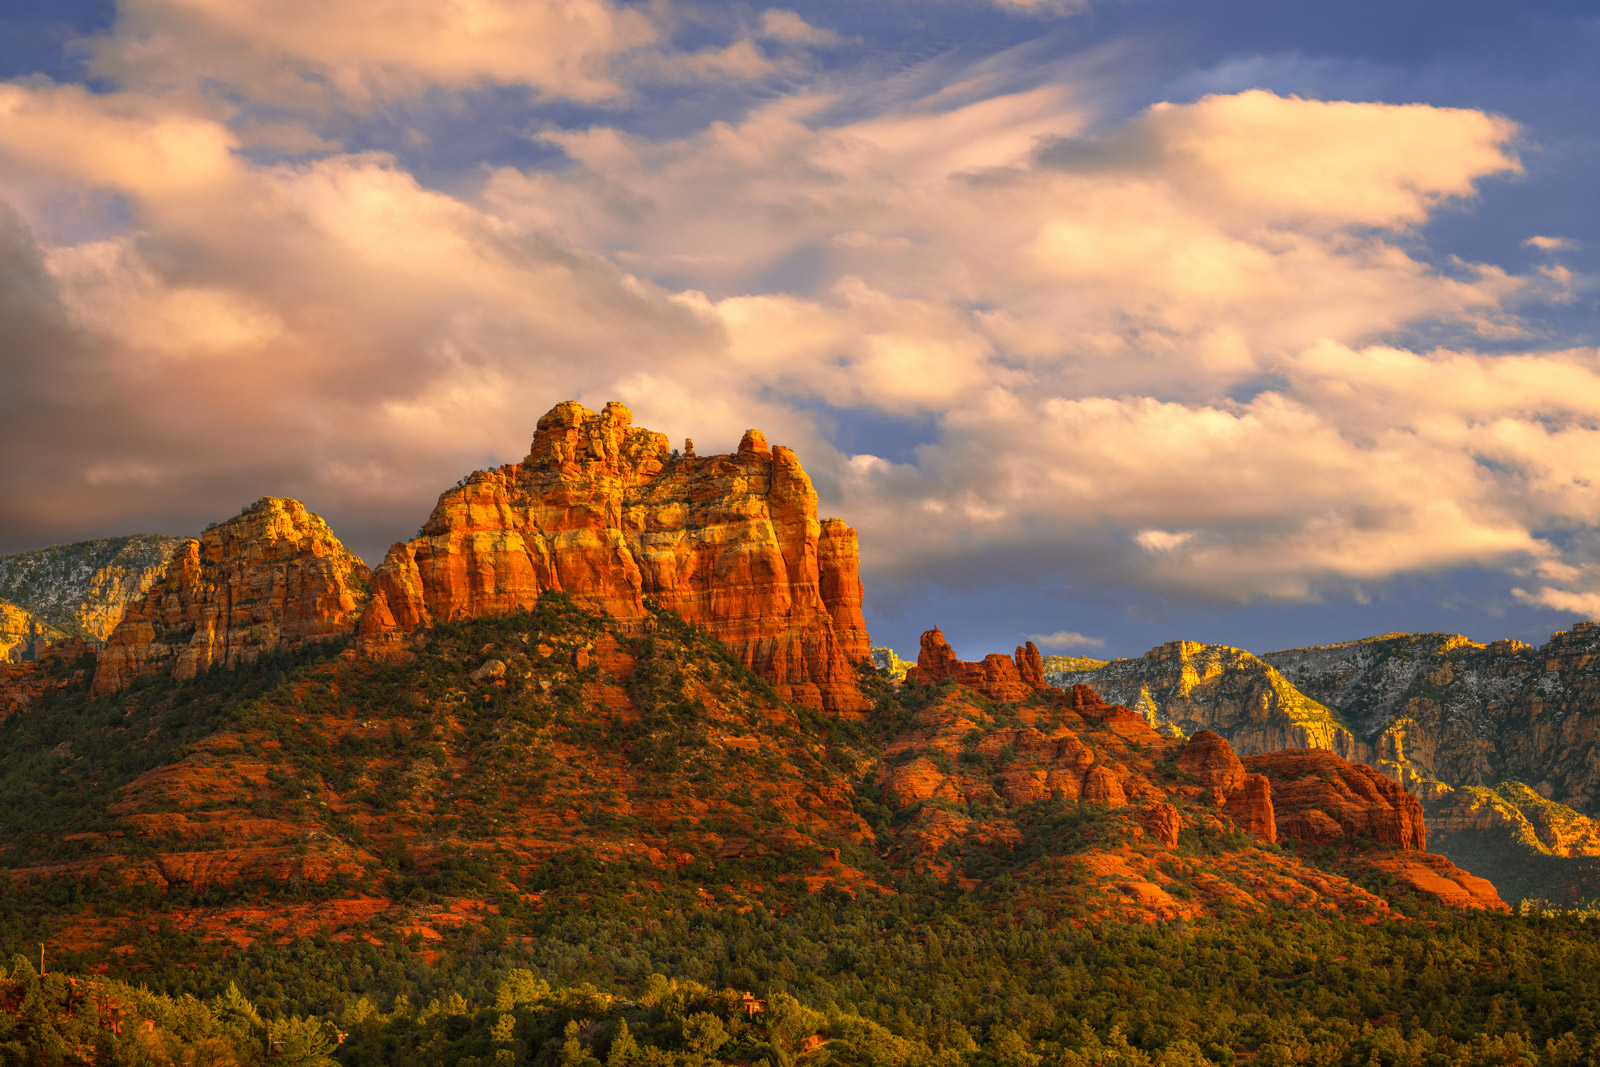 Arizona, Sedona, Red Rock, Mountains, Sunset, limited edition, photograph, fine art, landscape, photo